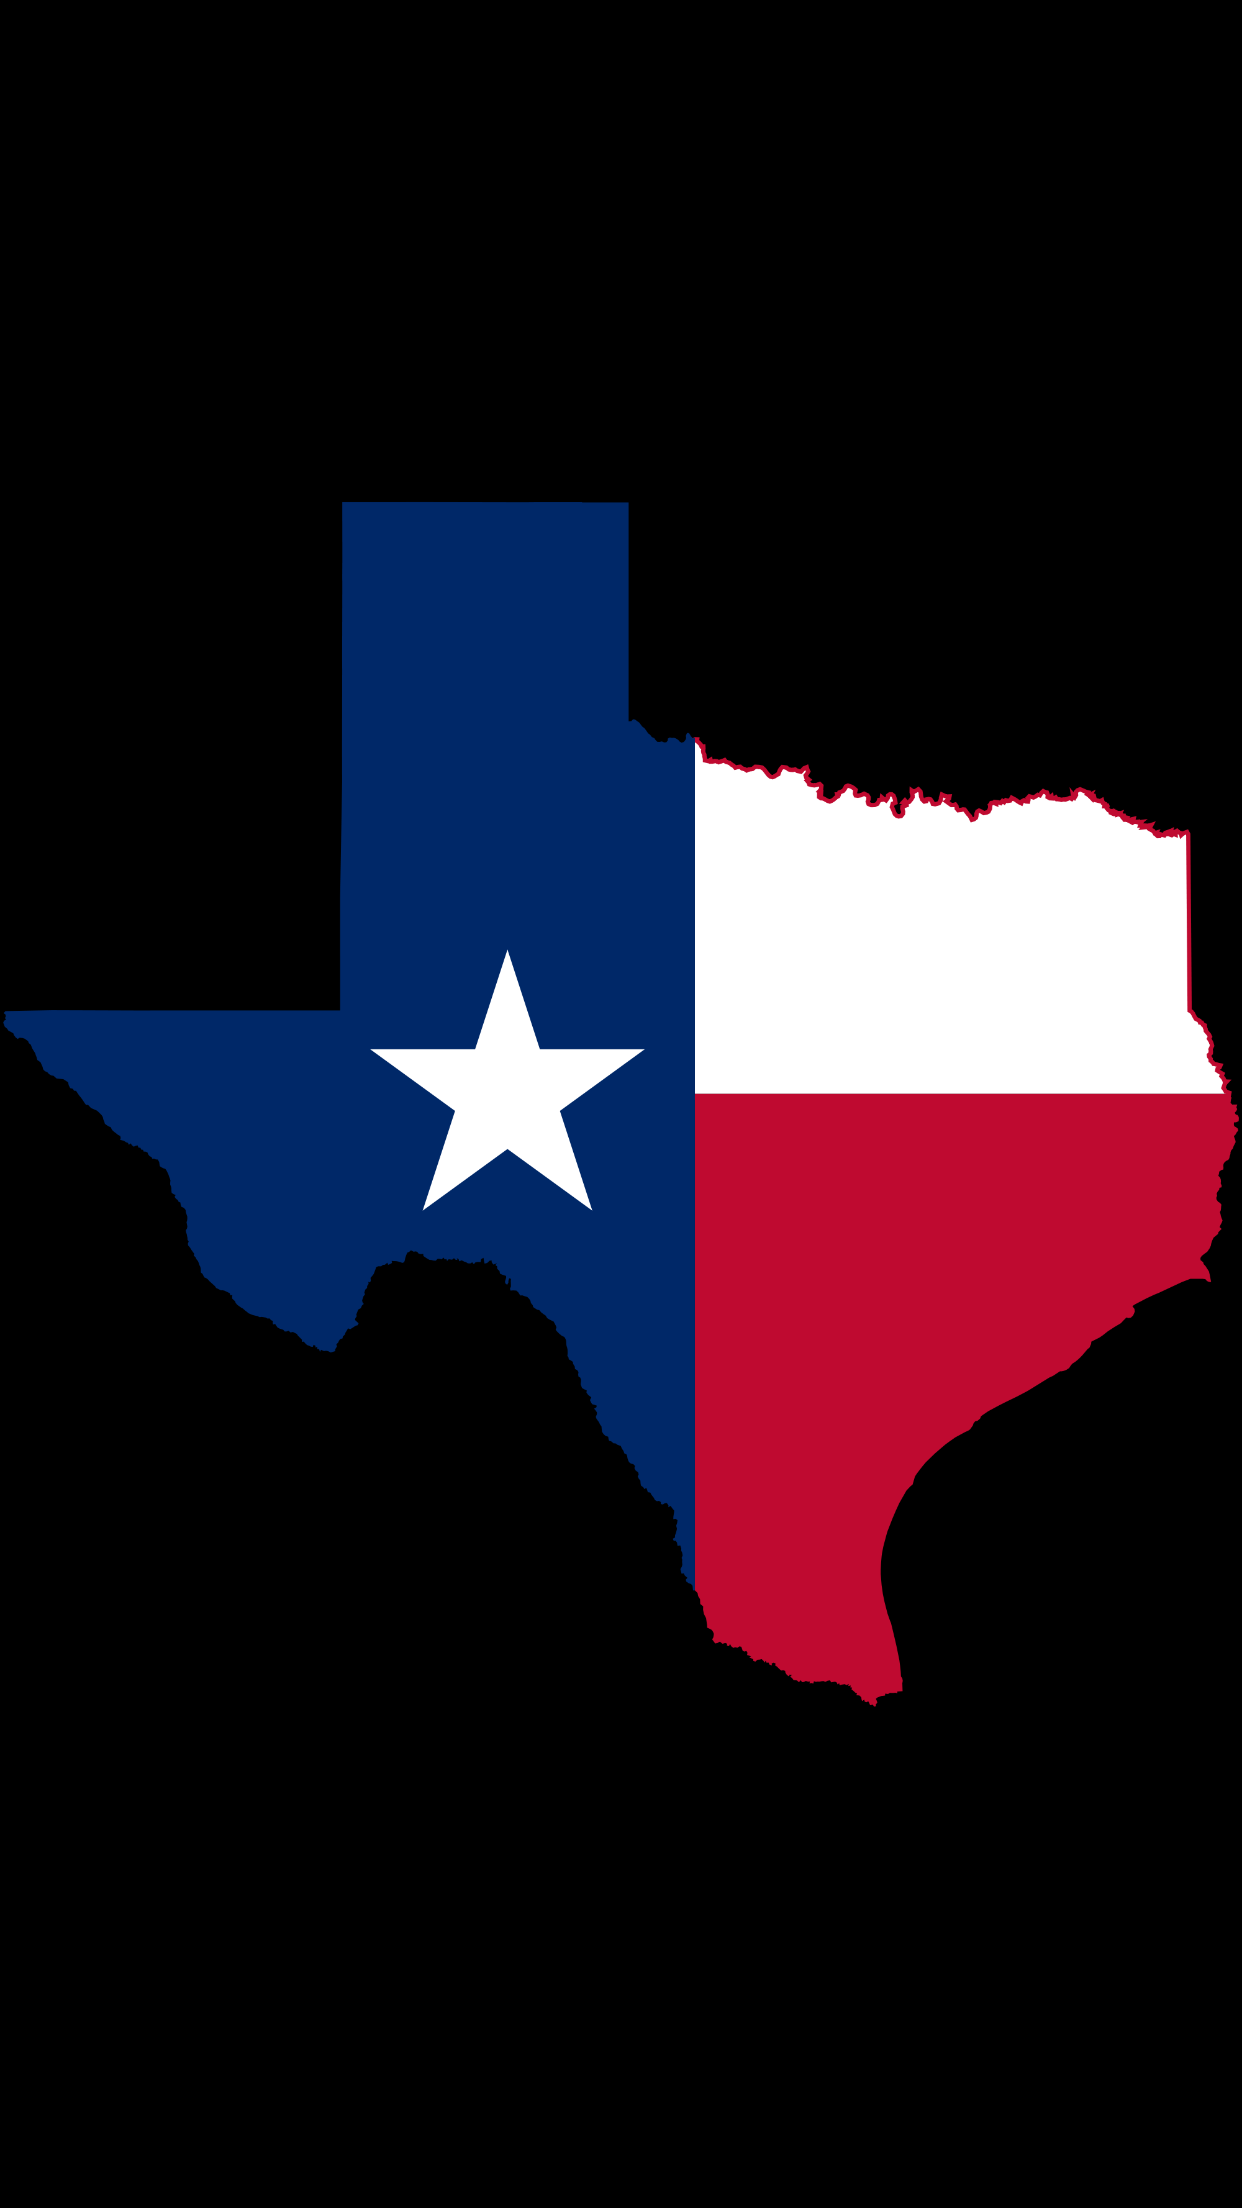 Apple iPhone 6Plus Texas Wallpaper Texas flags Tire cover 1242x2208